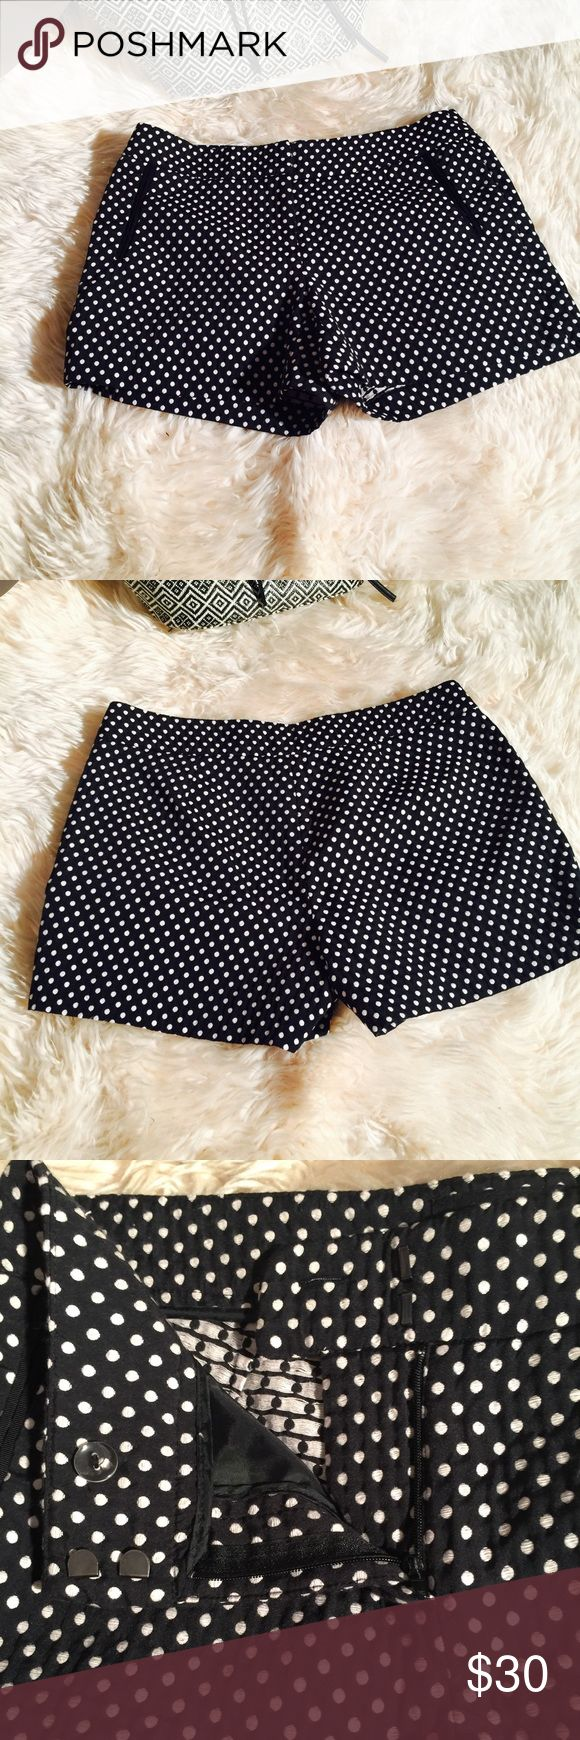 Polka Dots Shorts Cynthia Rowley dressy shorts size 6 GUC two front pockets zip and hook closure has 2 darts in the front 2 in the back to give it a nice fitting specially to camouflage the tummy bulge lol very classy dress up or dress down looks great with almost anything very versatile.Shop and feel good about it 😁. Part of the money u spend goes to Purple Heart Foundation 💜 Cynthia Rowley Shorts